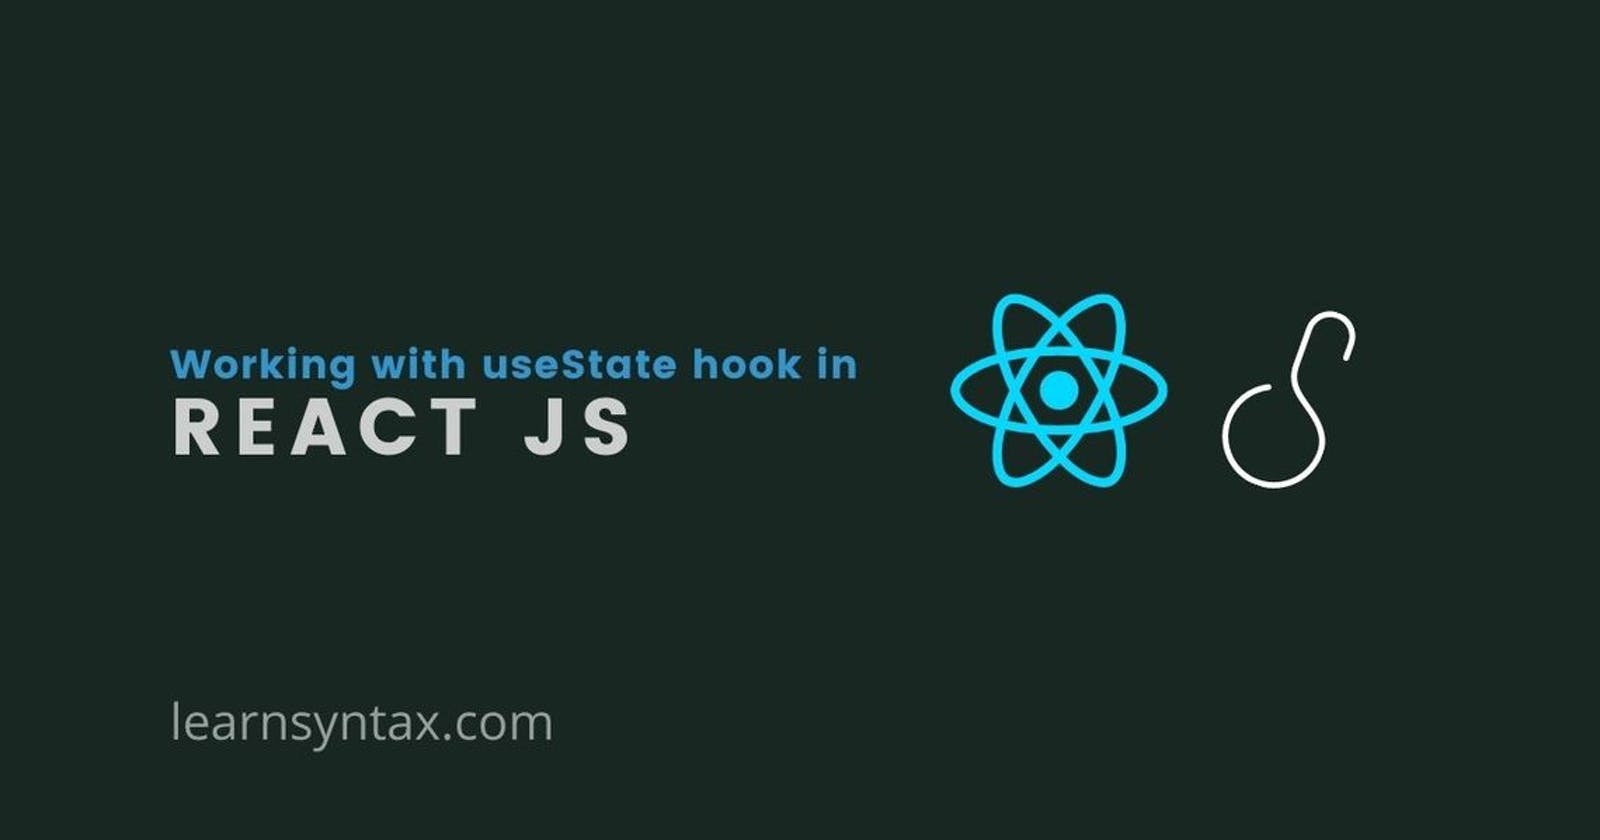 Getting started with useState hook in React JS